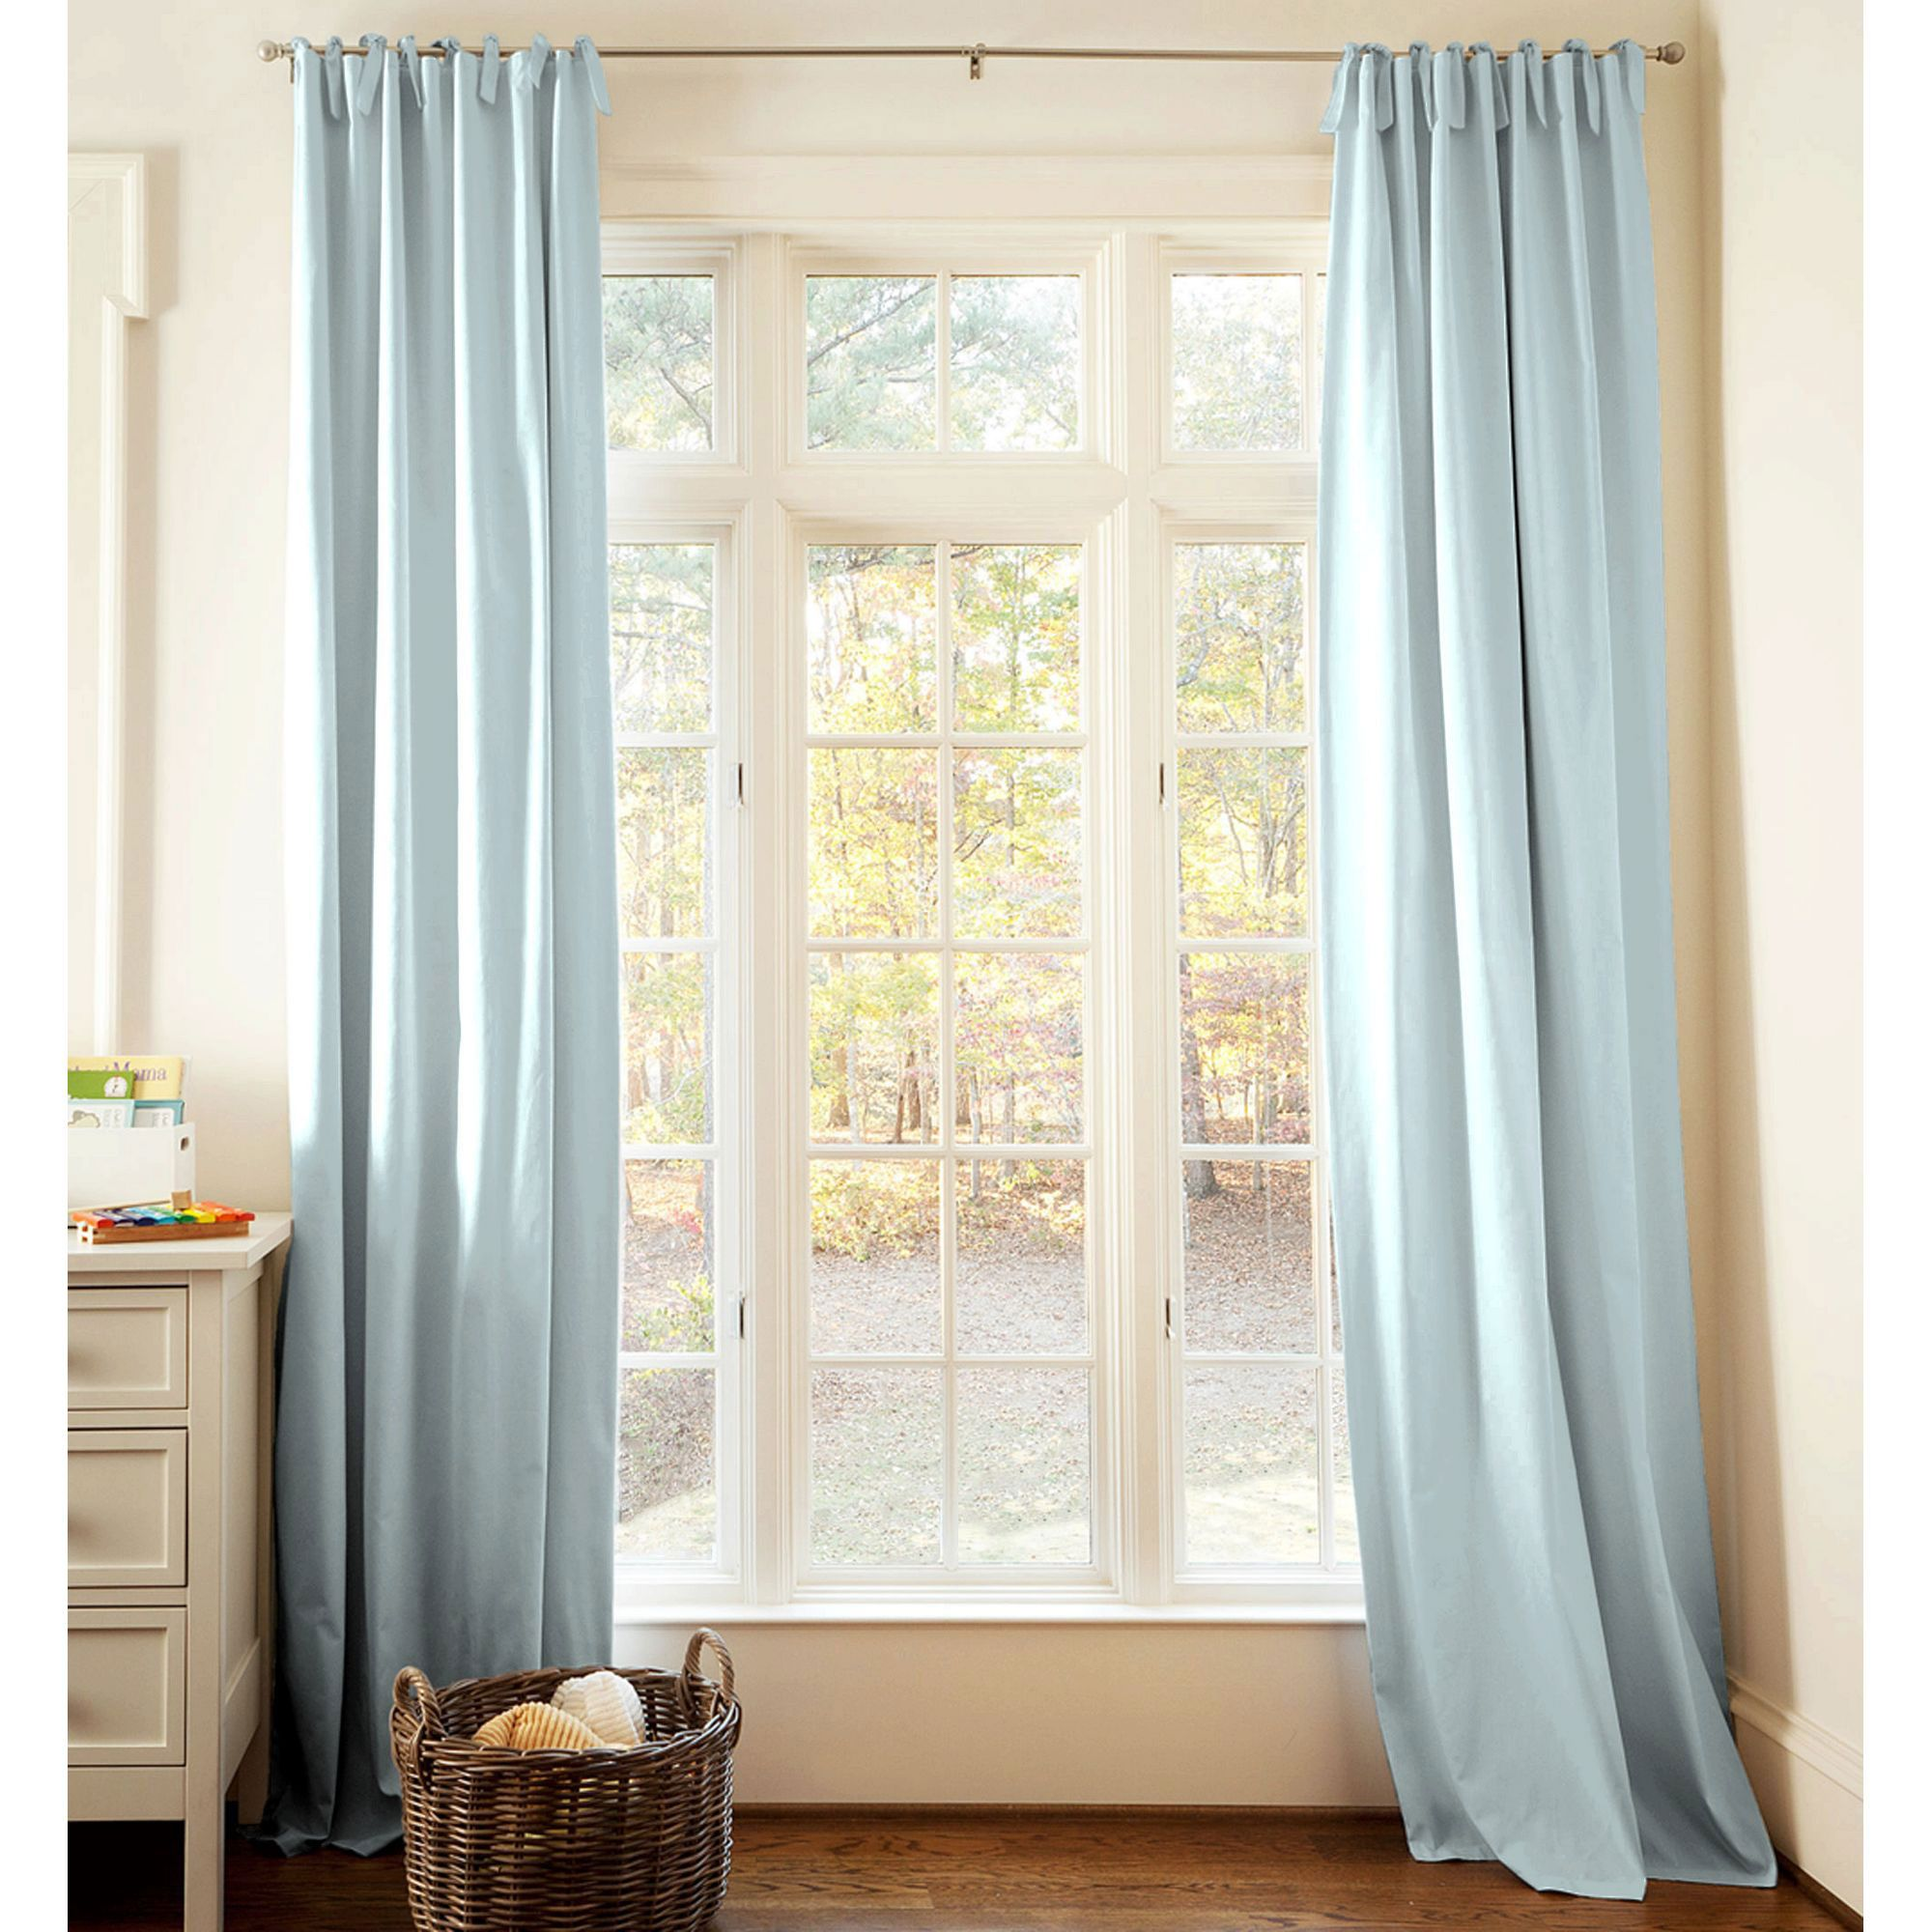 leaves world rugs treatments drapes market do navy xxx and tan window top curtains category grommet openweave autumn curtain